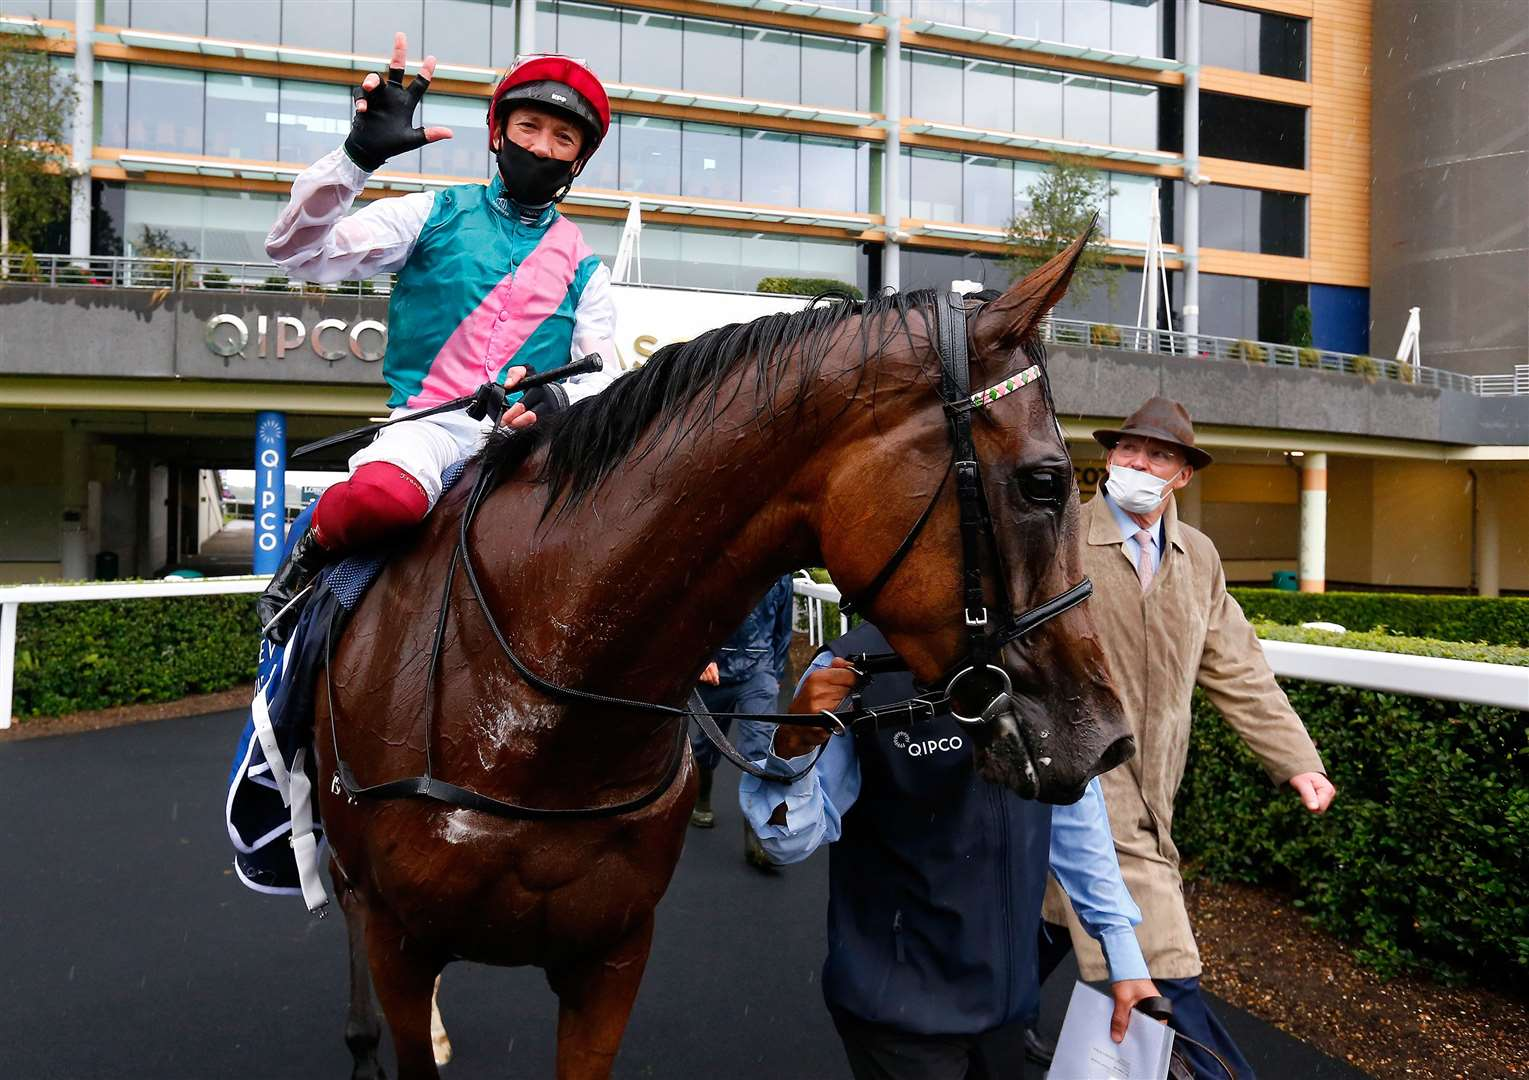 Enable and Frankie Dettori with John Gosden after winning The King George VI And Queen Elizabeth Qipco Stakes.Ascot 25.7.2020.Pic Dan Abraham-focusonracing.com. (39166099)